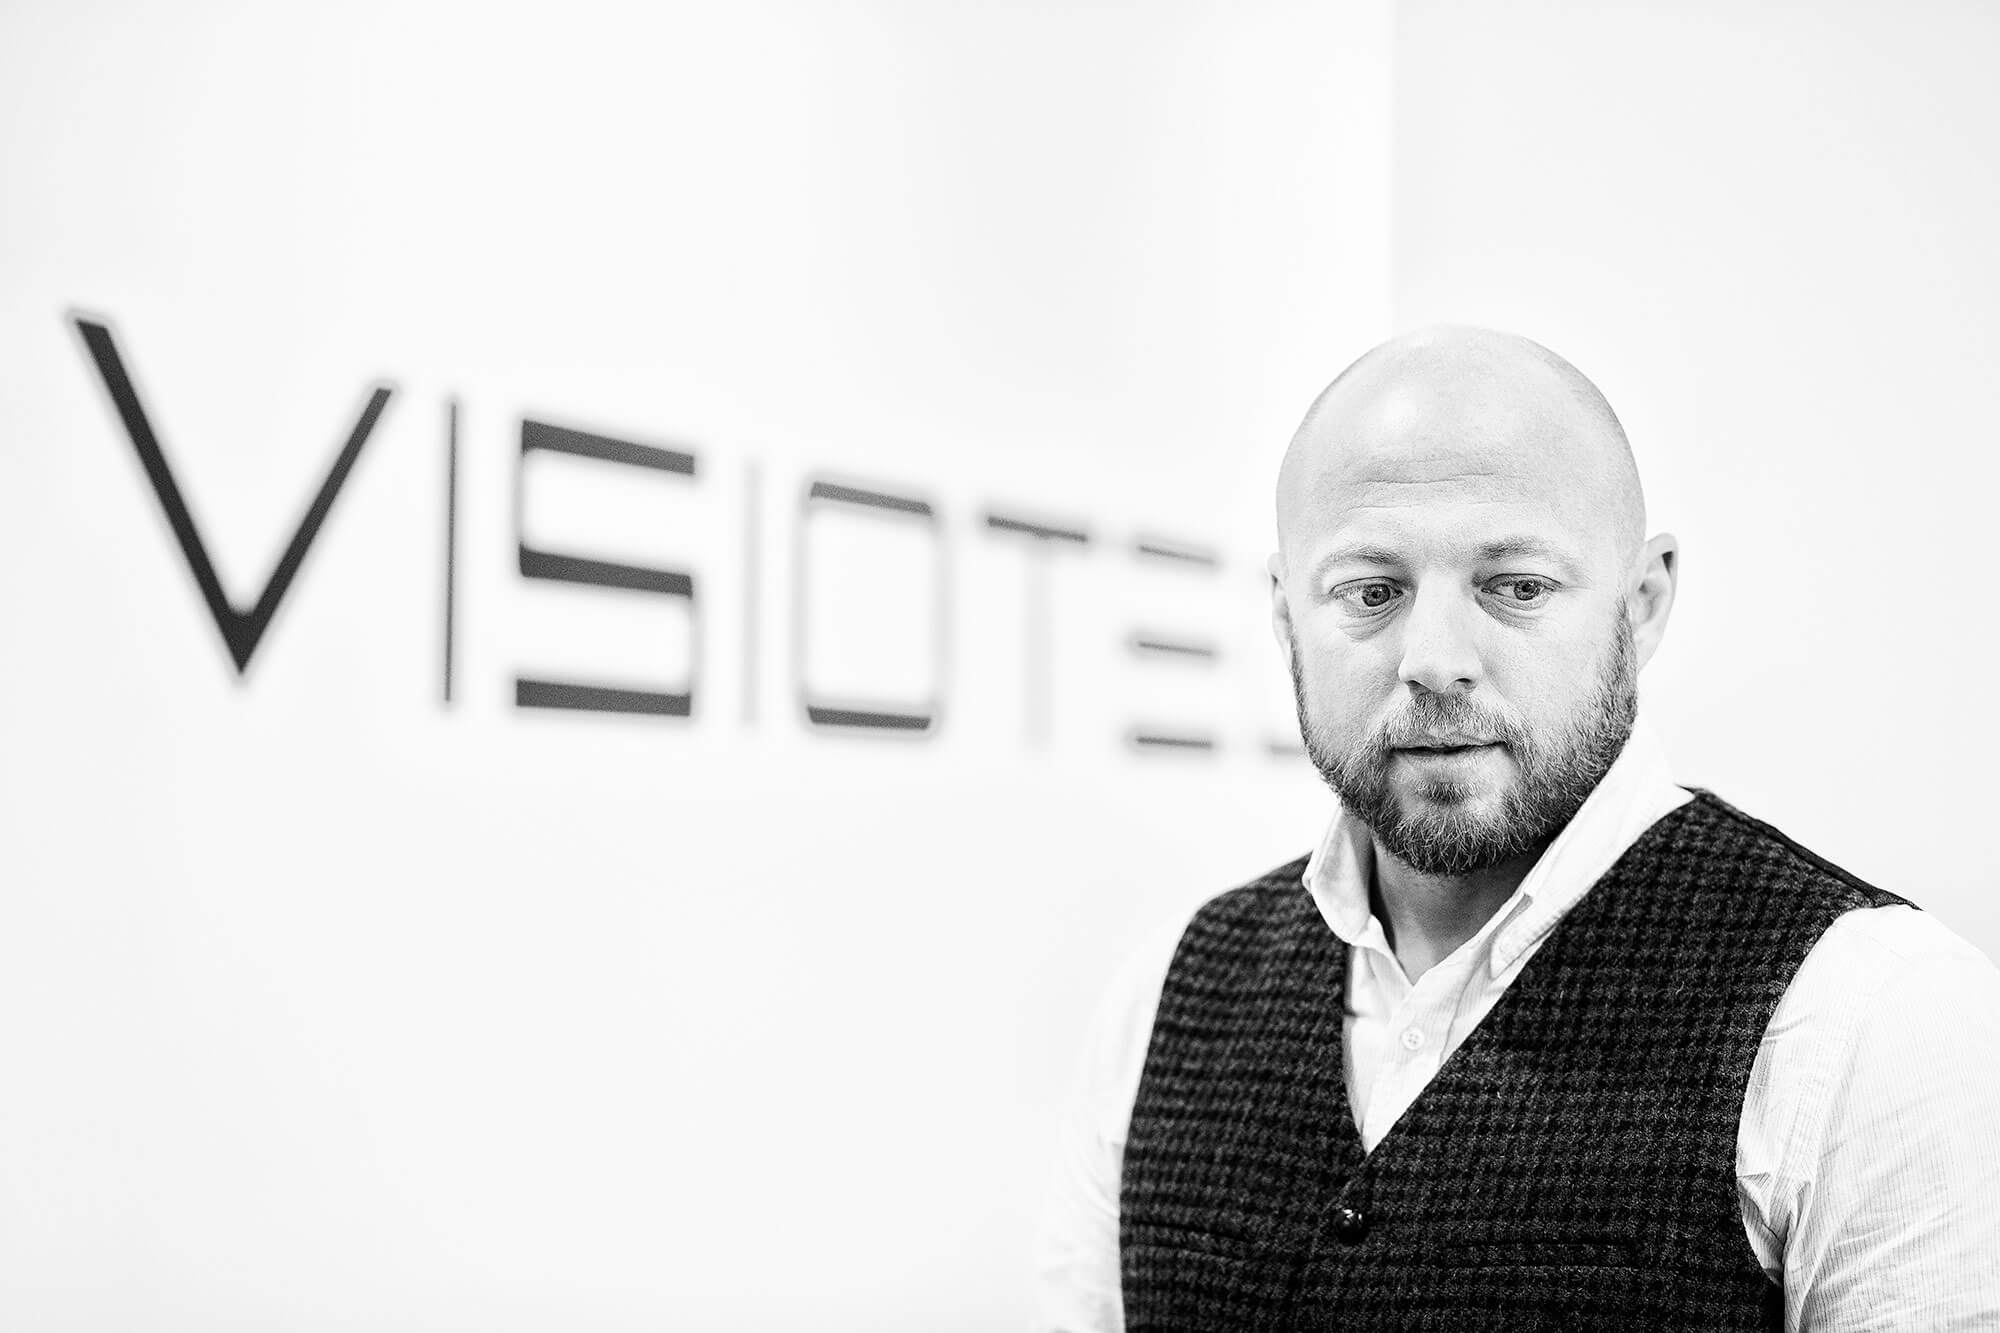 Mike Fischer-Arens, VISIOTECH-GmbH